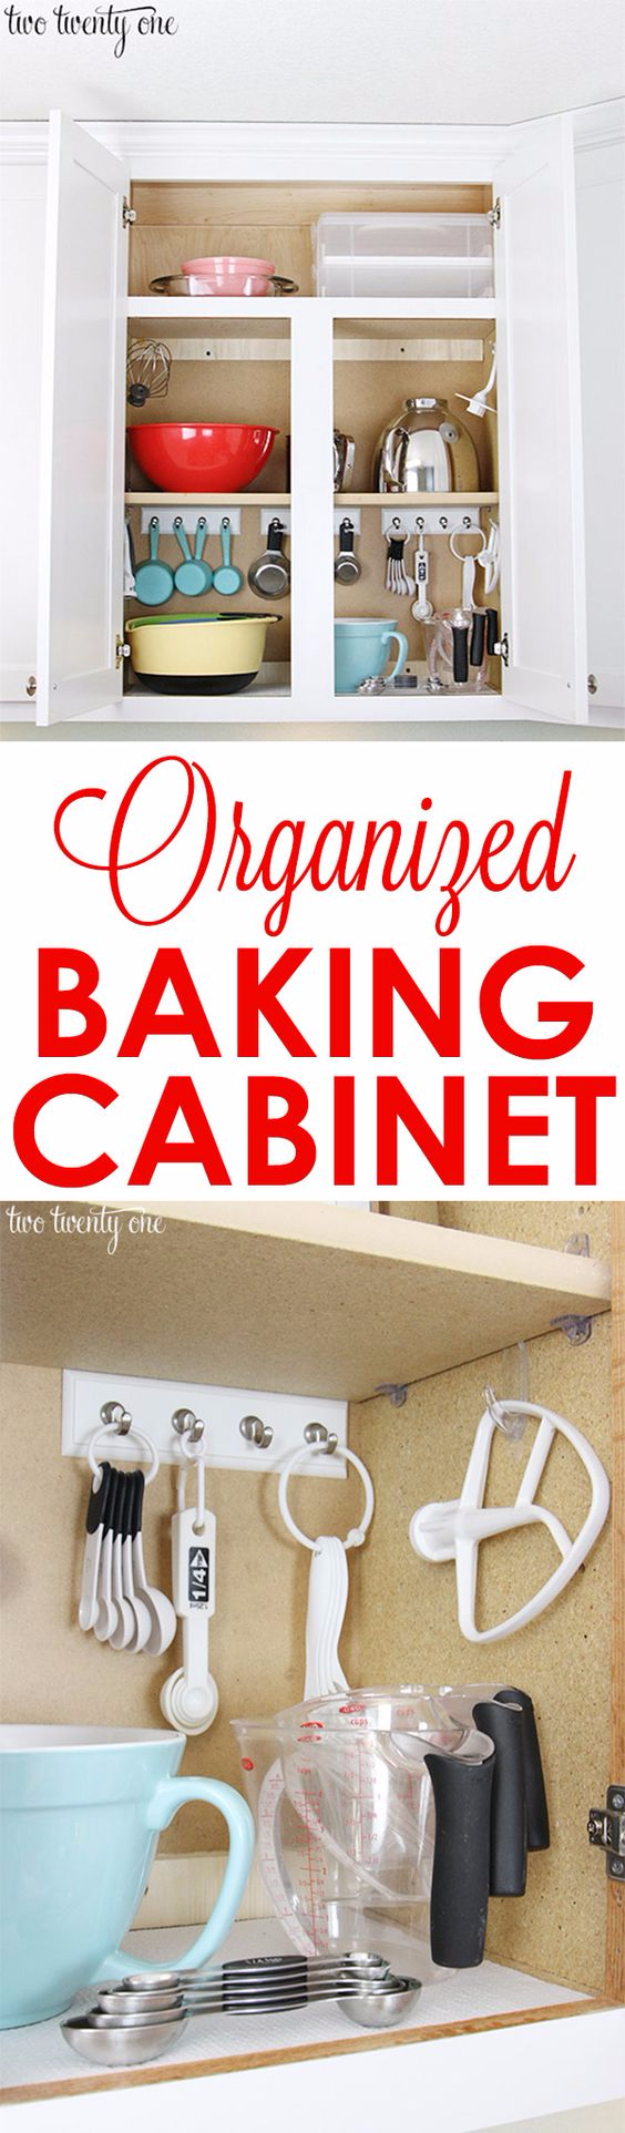 Best Organizing Ideas for the New Year - Organized Baking Cabinet - Resolutions for Getting Organized - DIY Organizing Projects for Home, Bedroom, Closet, Bath and Kitchen - Easy Ways to Organize Shoes, Clutter, Desk and Closets - DIY Projects and Crafts for Women and Men